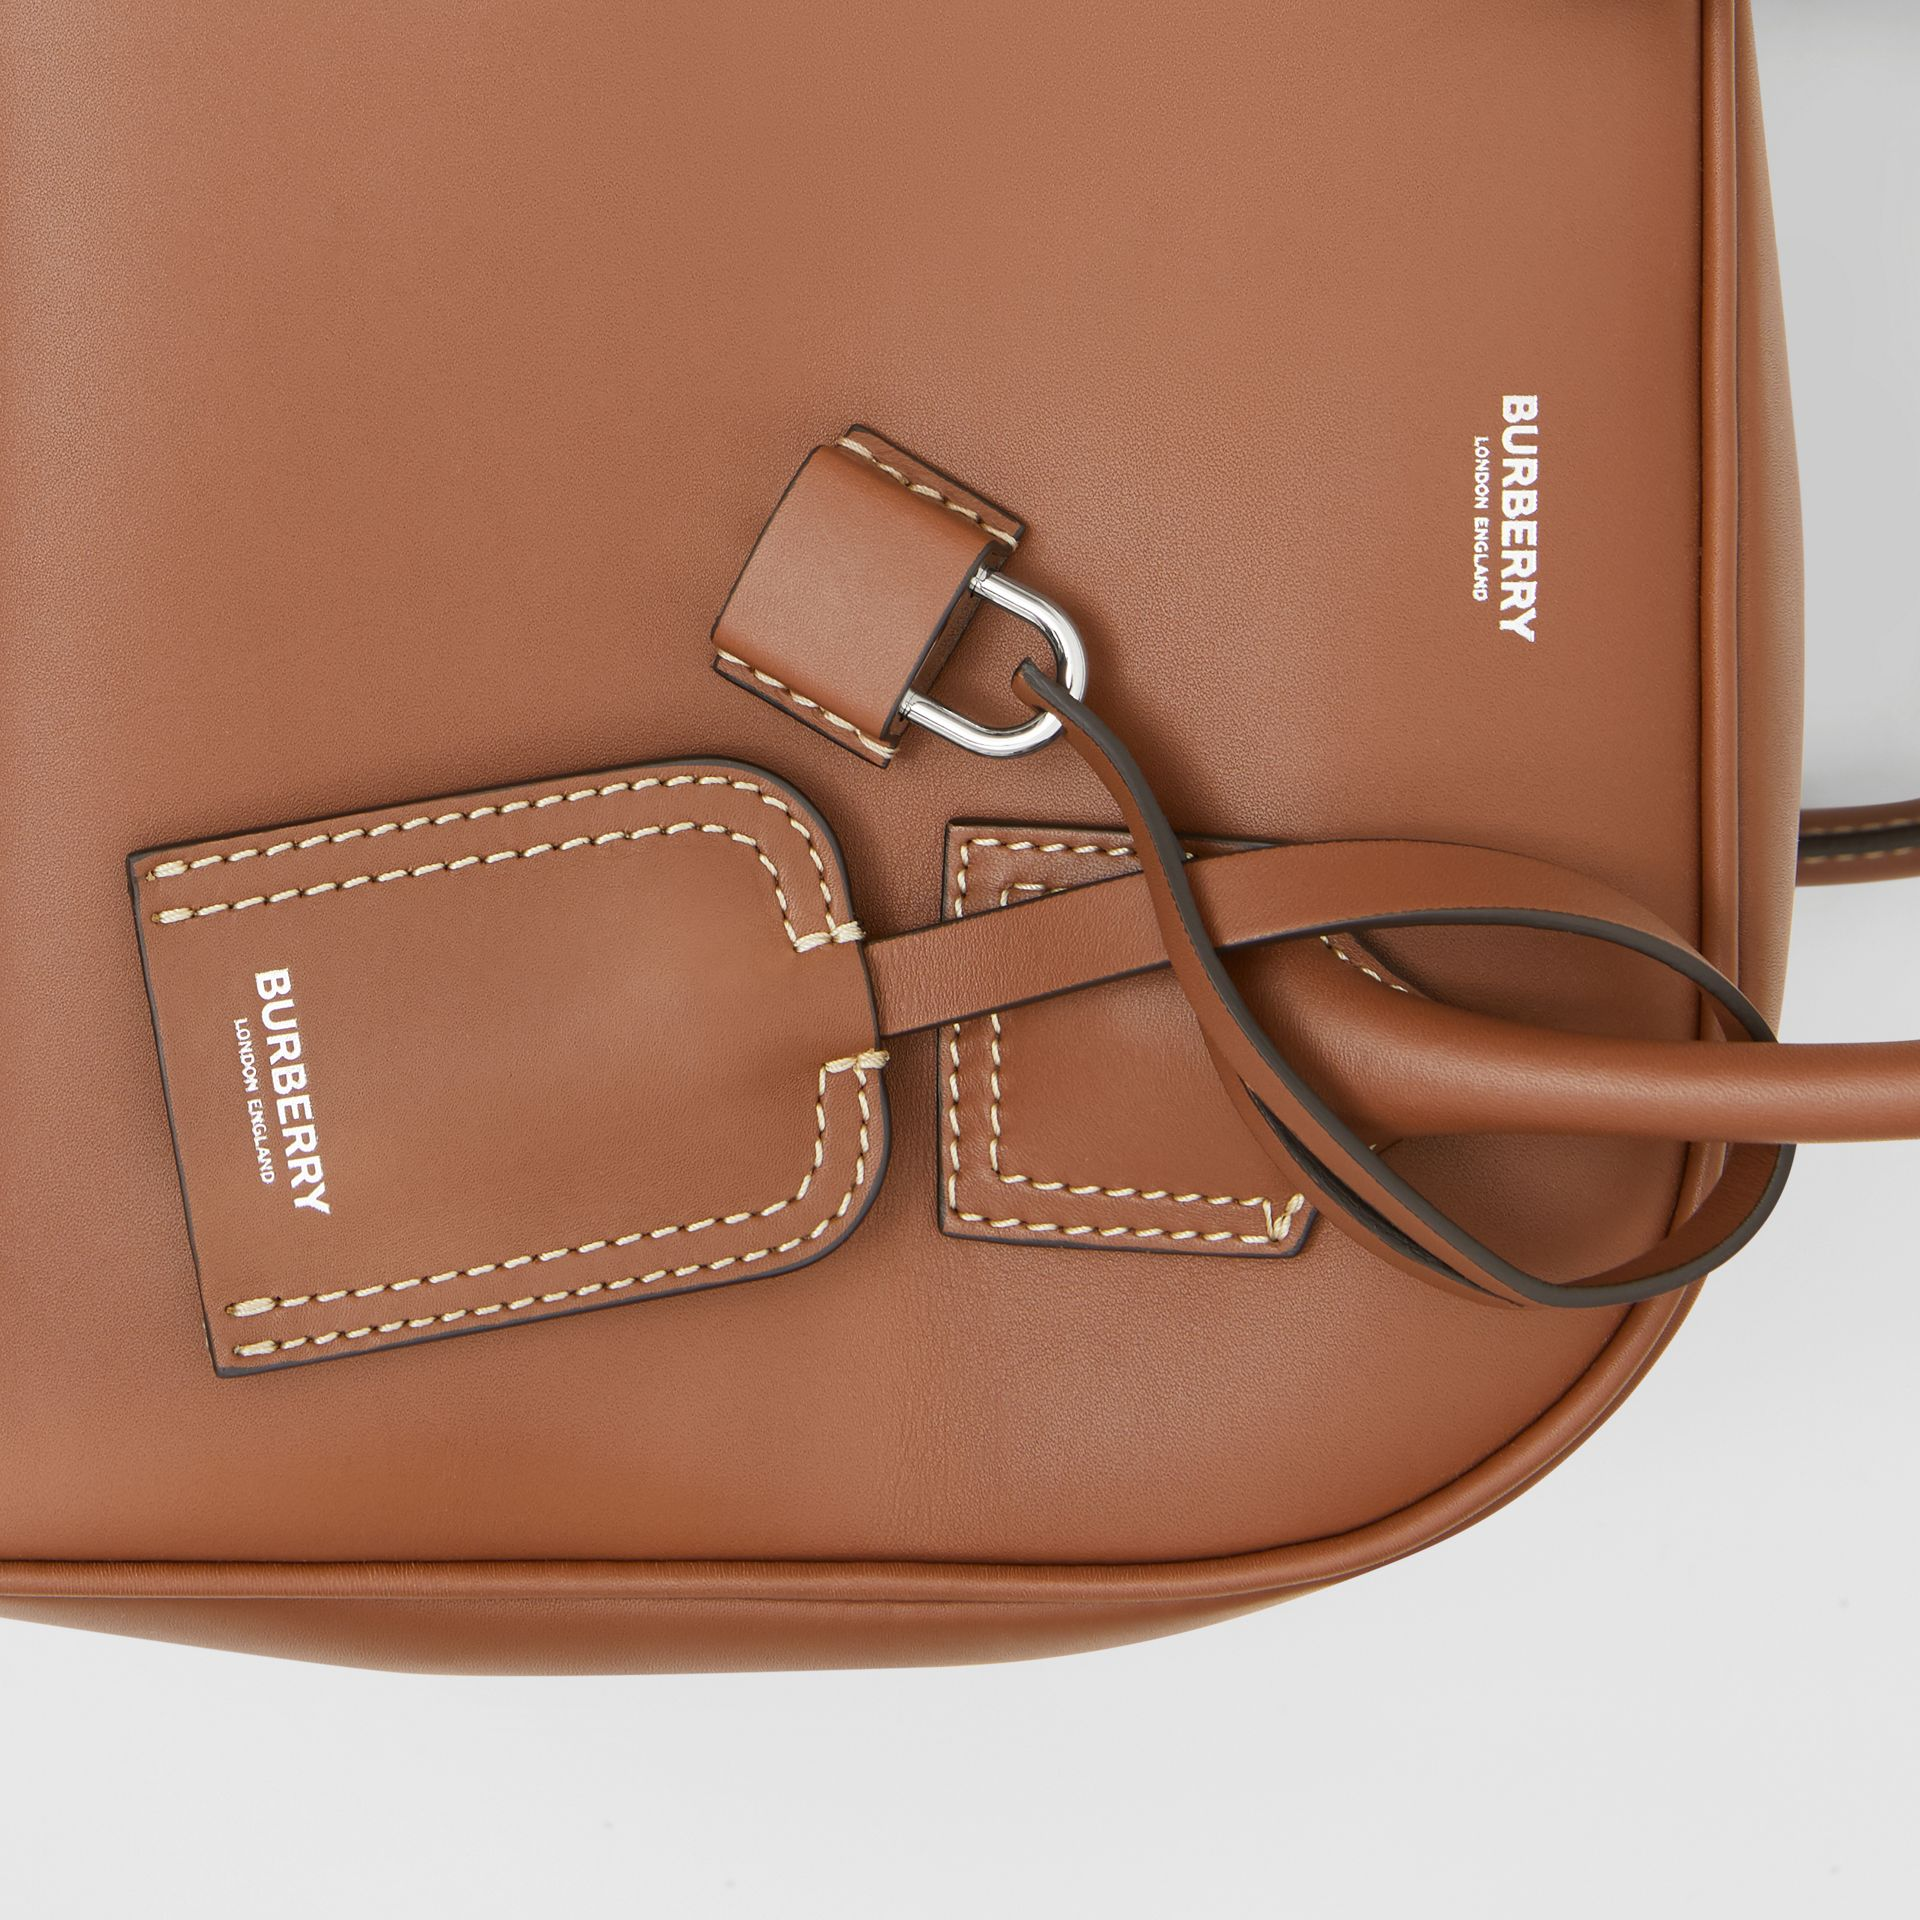 Small Leather Cube Bag in Malt Brown - Women | Burberry Hong Kong - gallery image 1